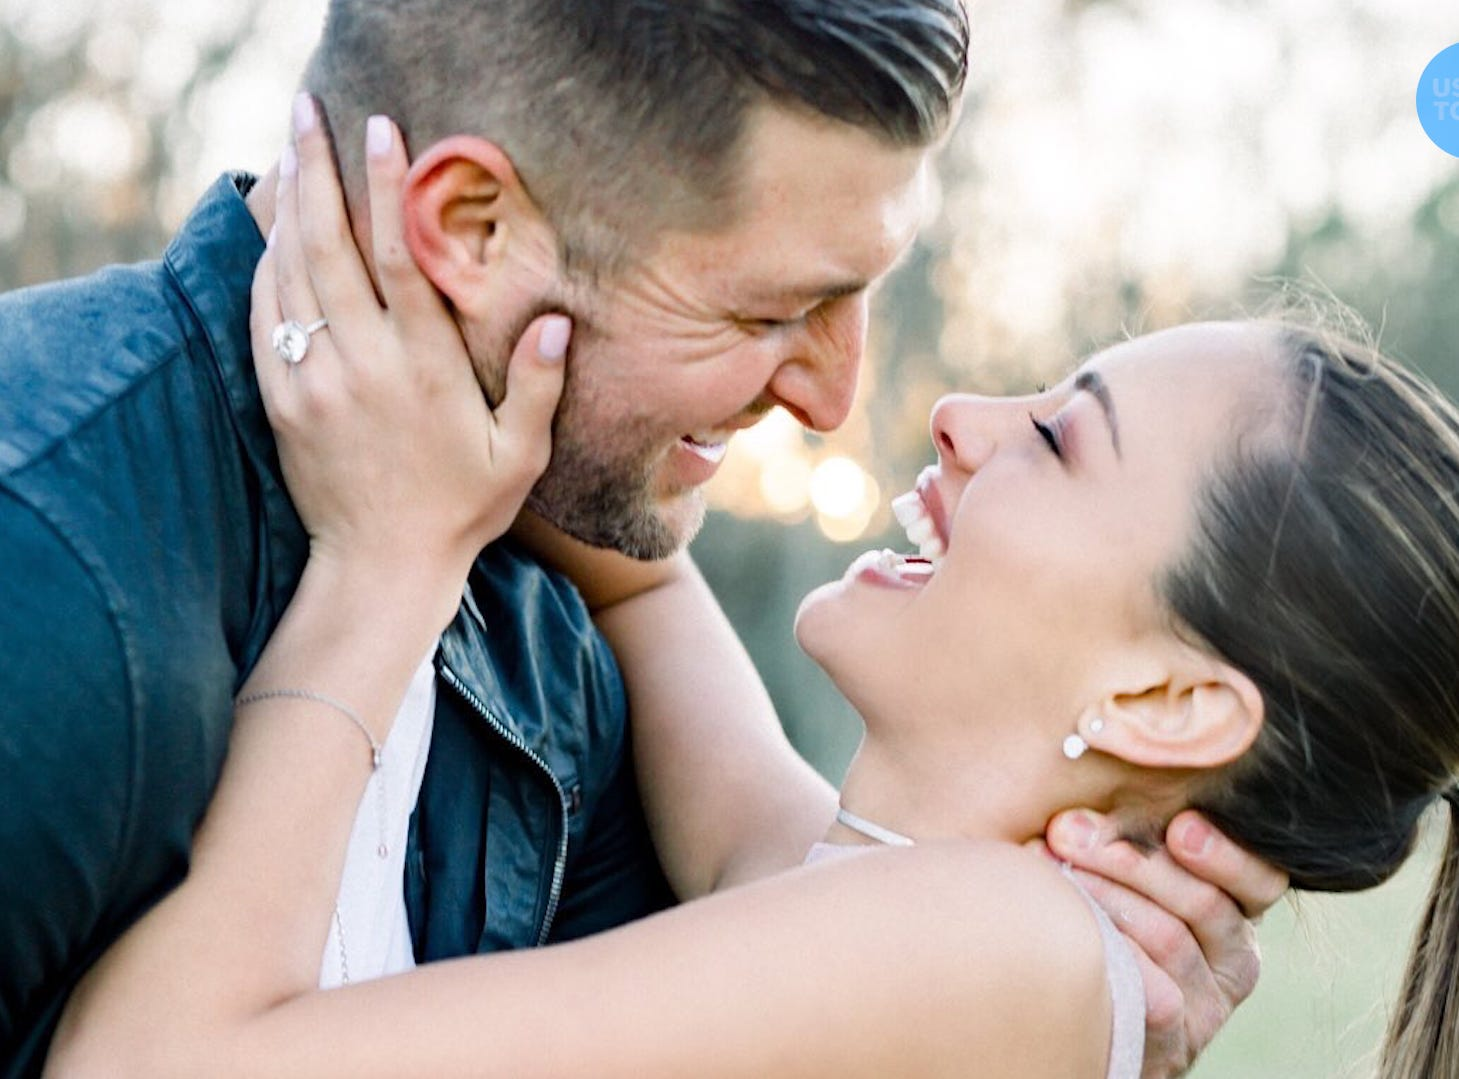 Tim Tebow put a ring on it. With a 7.25-carat diamond, one of sports' most eligible bachelors is officially off the market.